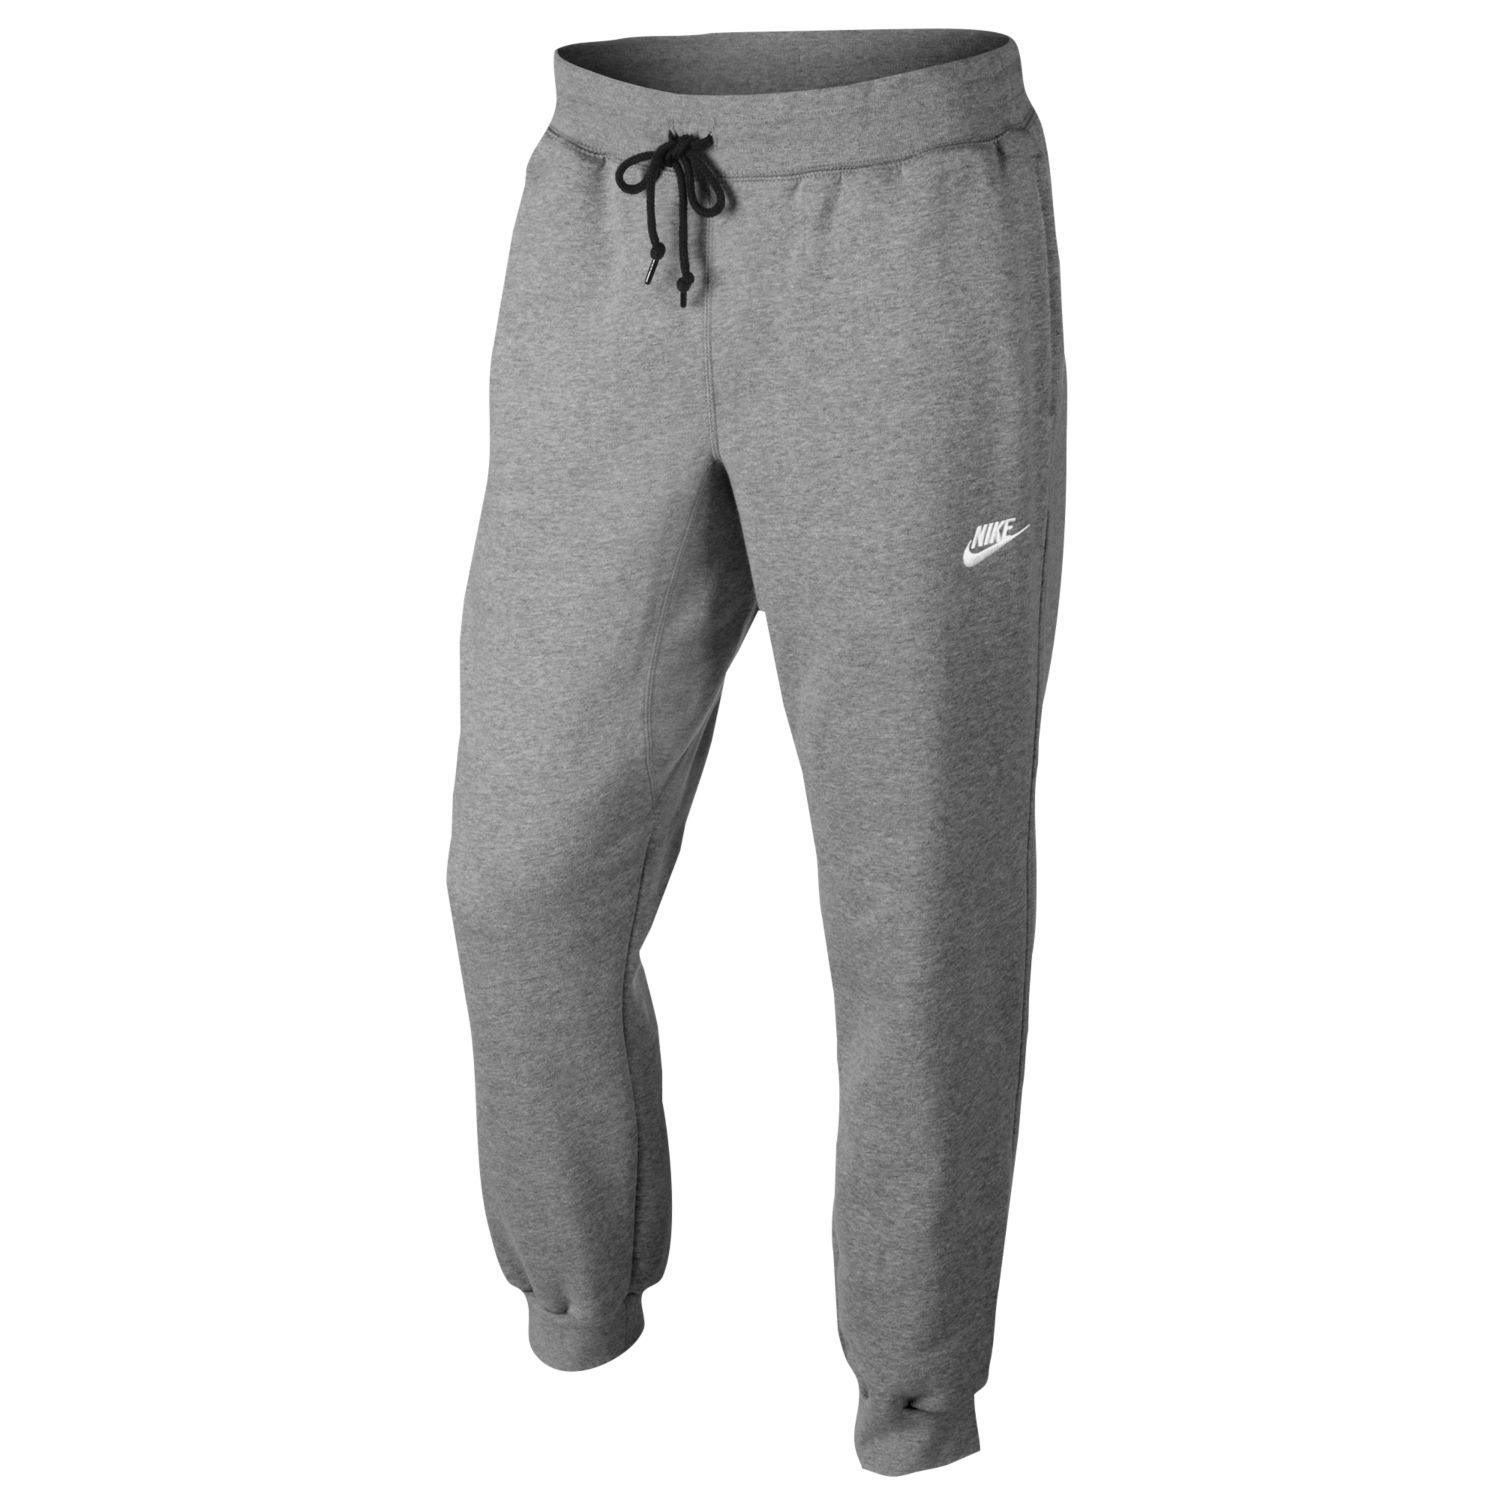 Nike AW77 Ace Cuff Pants - Men's - Casual - Clothing - Dk Grey Heather/